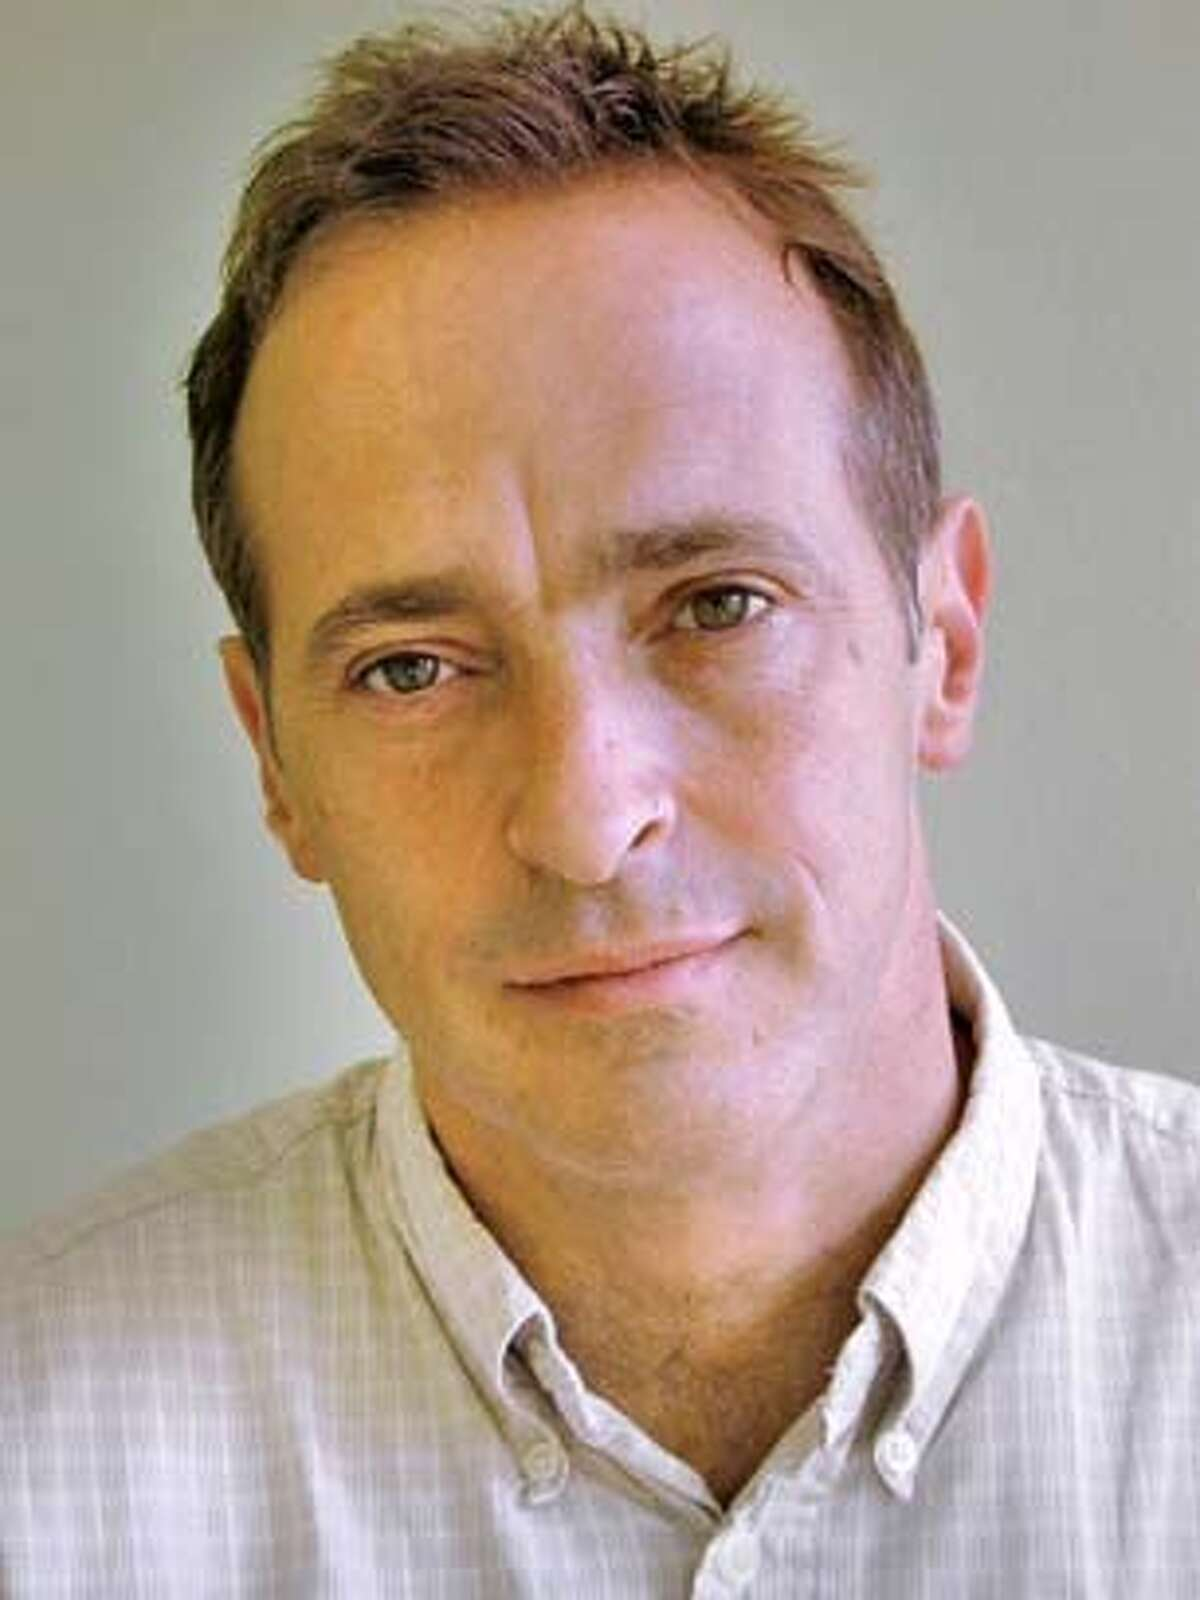 � DAVID SEDARIS.JPG David Sedaris, NPR commentator and best-selling author, returns to Zellerbach Hall to read from his latest book, Dress Your Family in Corduroy and Denim, as well as from new work in progress, part of Cal Performances� Strictly Speaking series, November 9. HO MANDATORY CREDIT FOR PHOTOG AND SF CHRONICLE/NO SALES-MAGS OUT